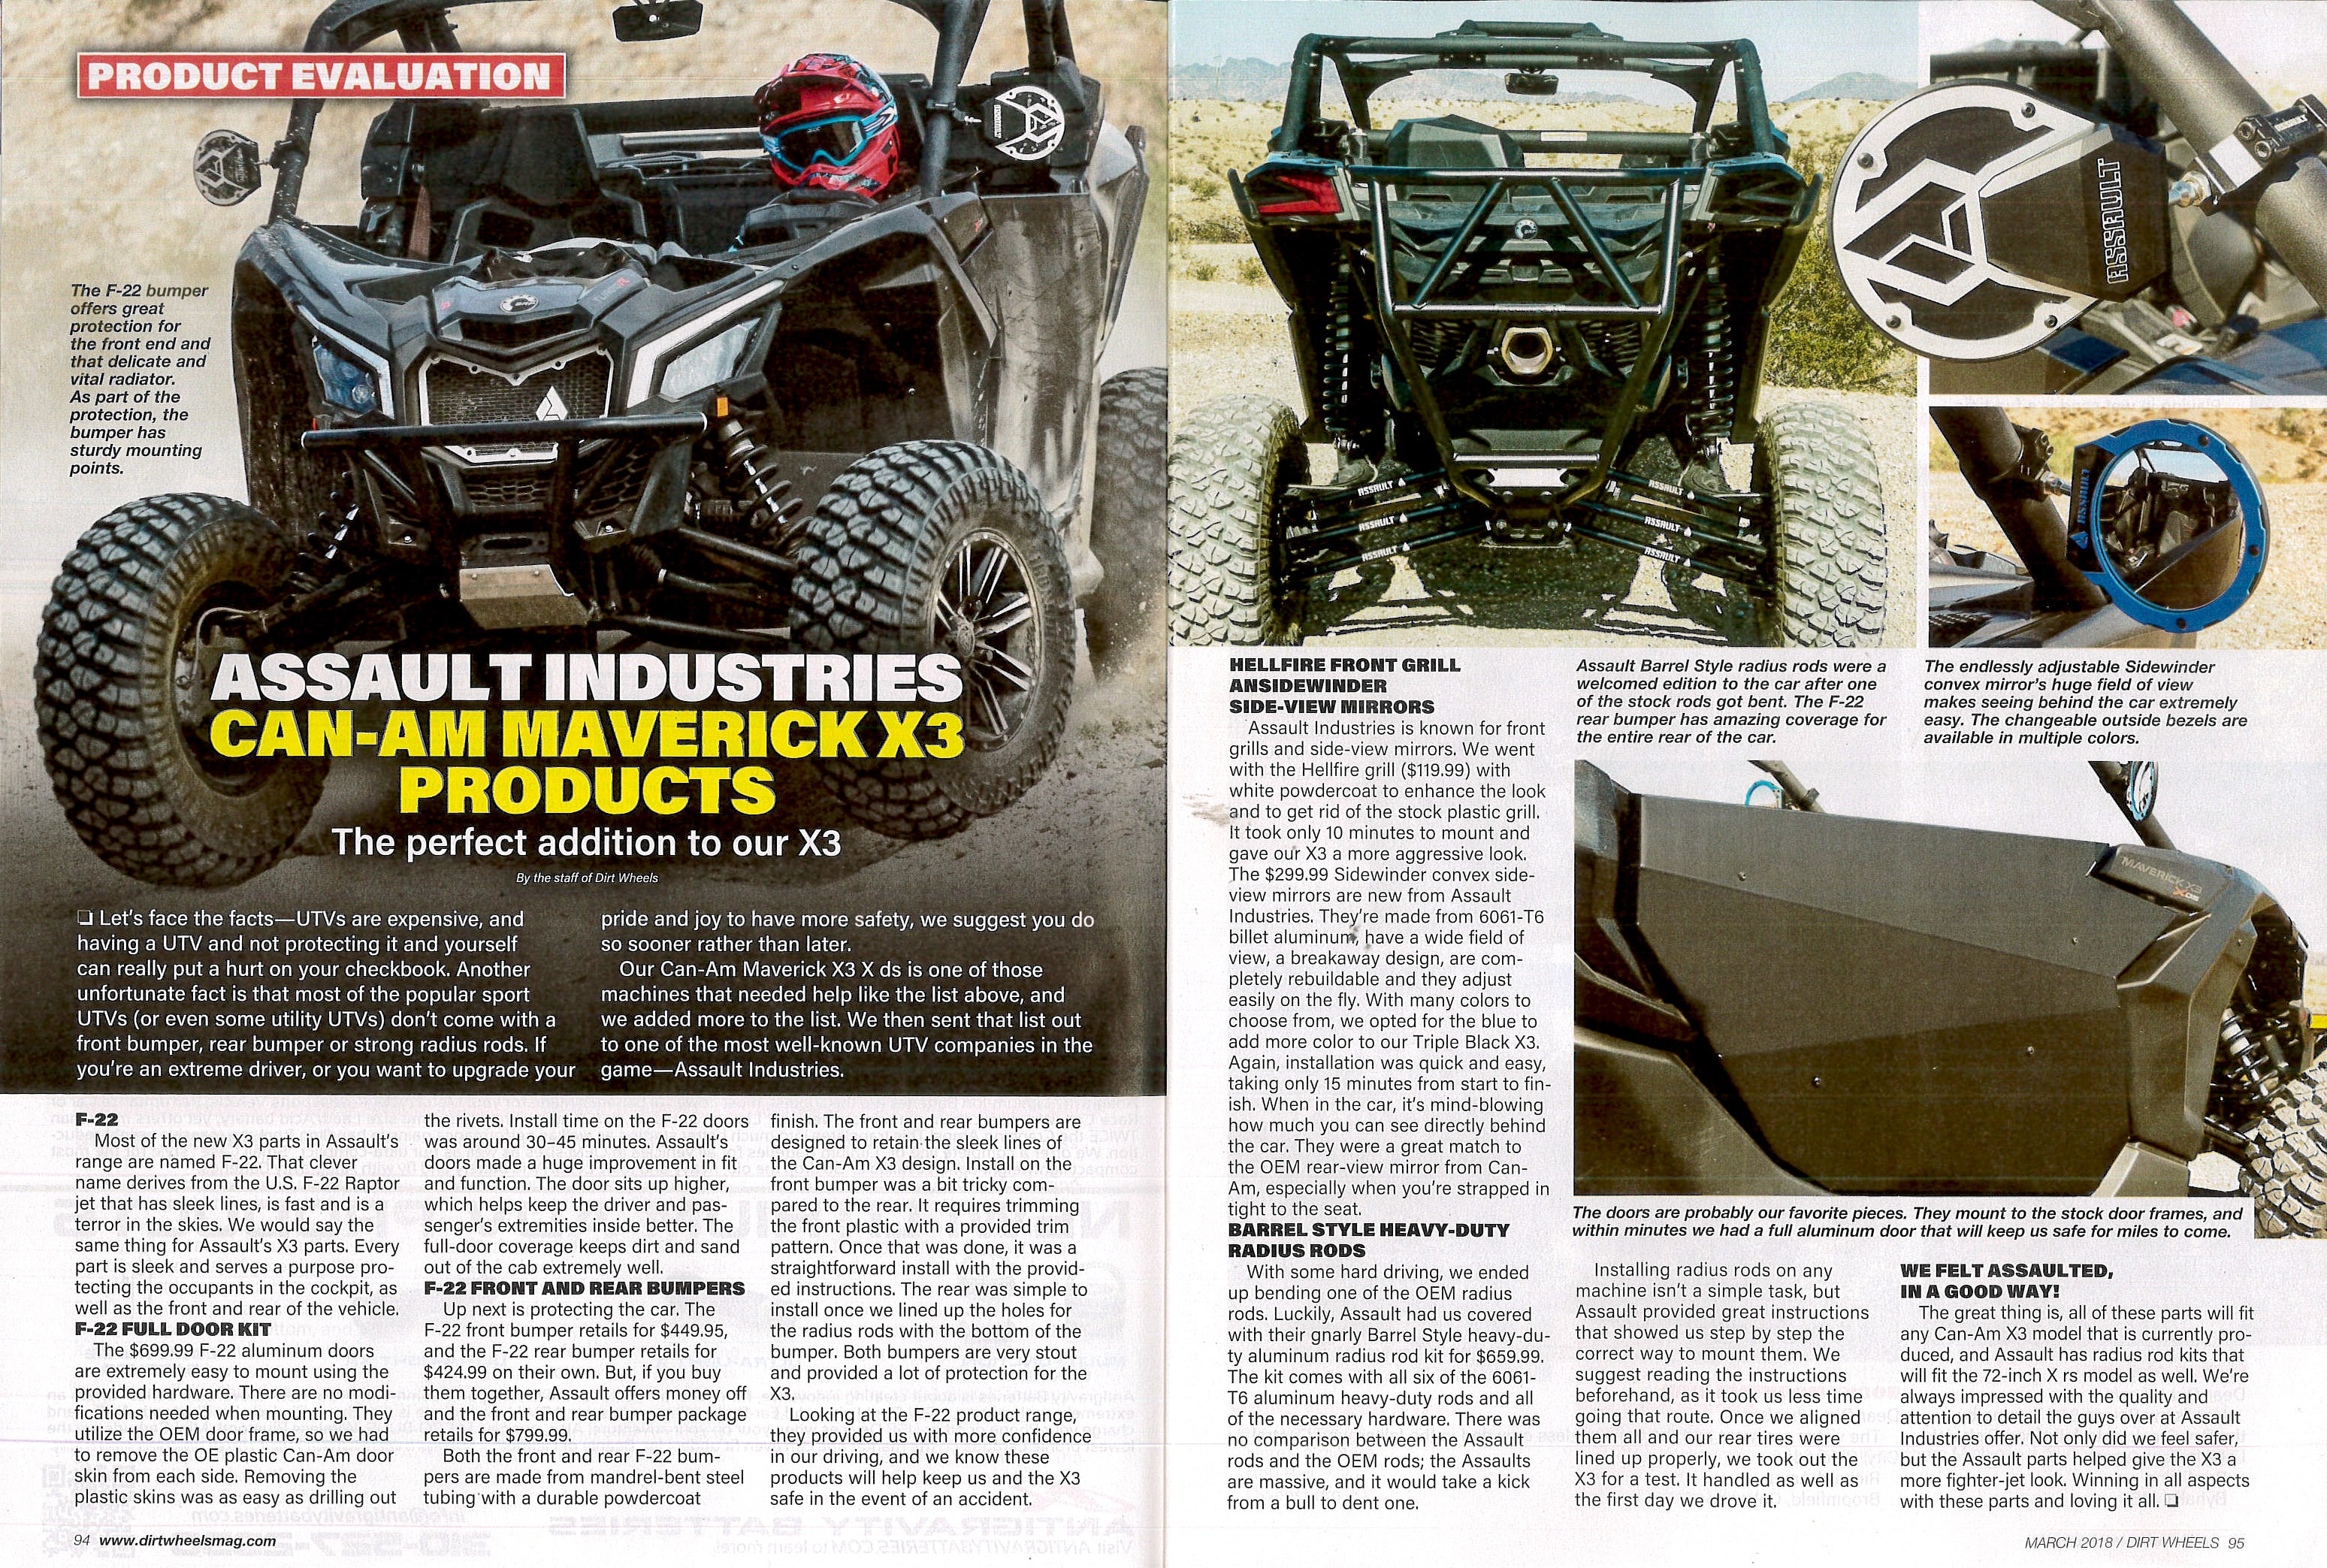 News: CanAm Maverick X3 product review in the March 2018 Dirt Wheels